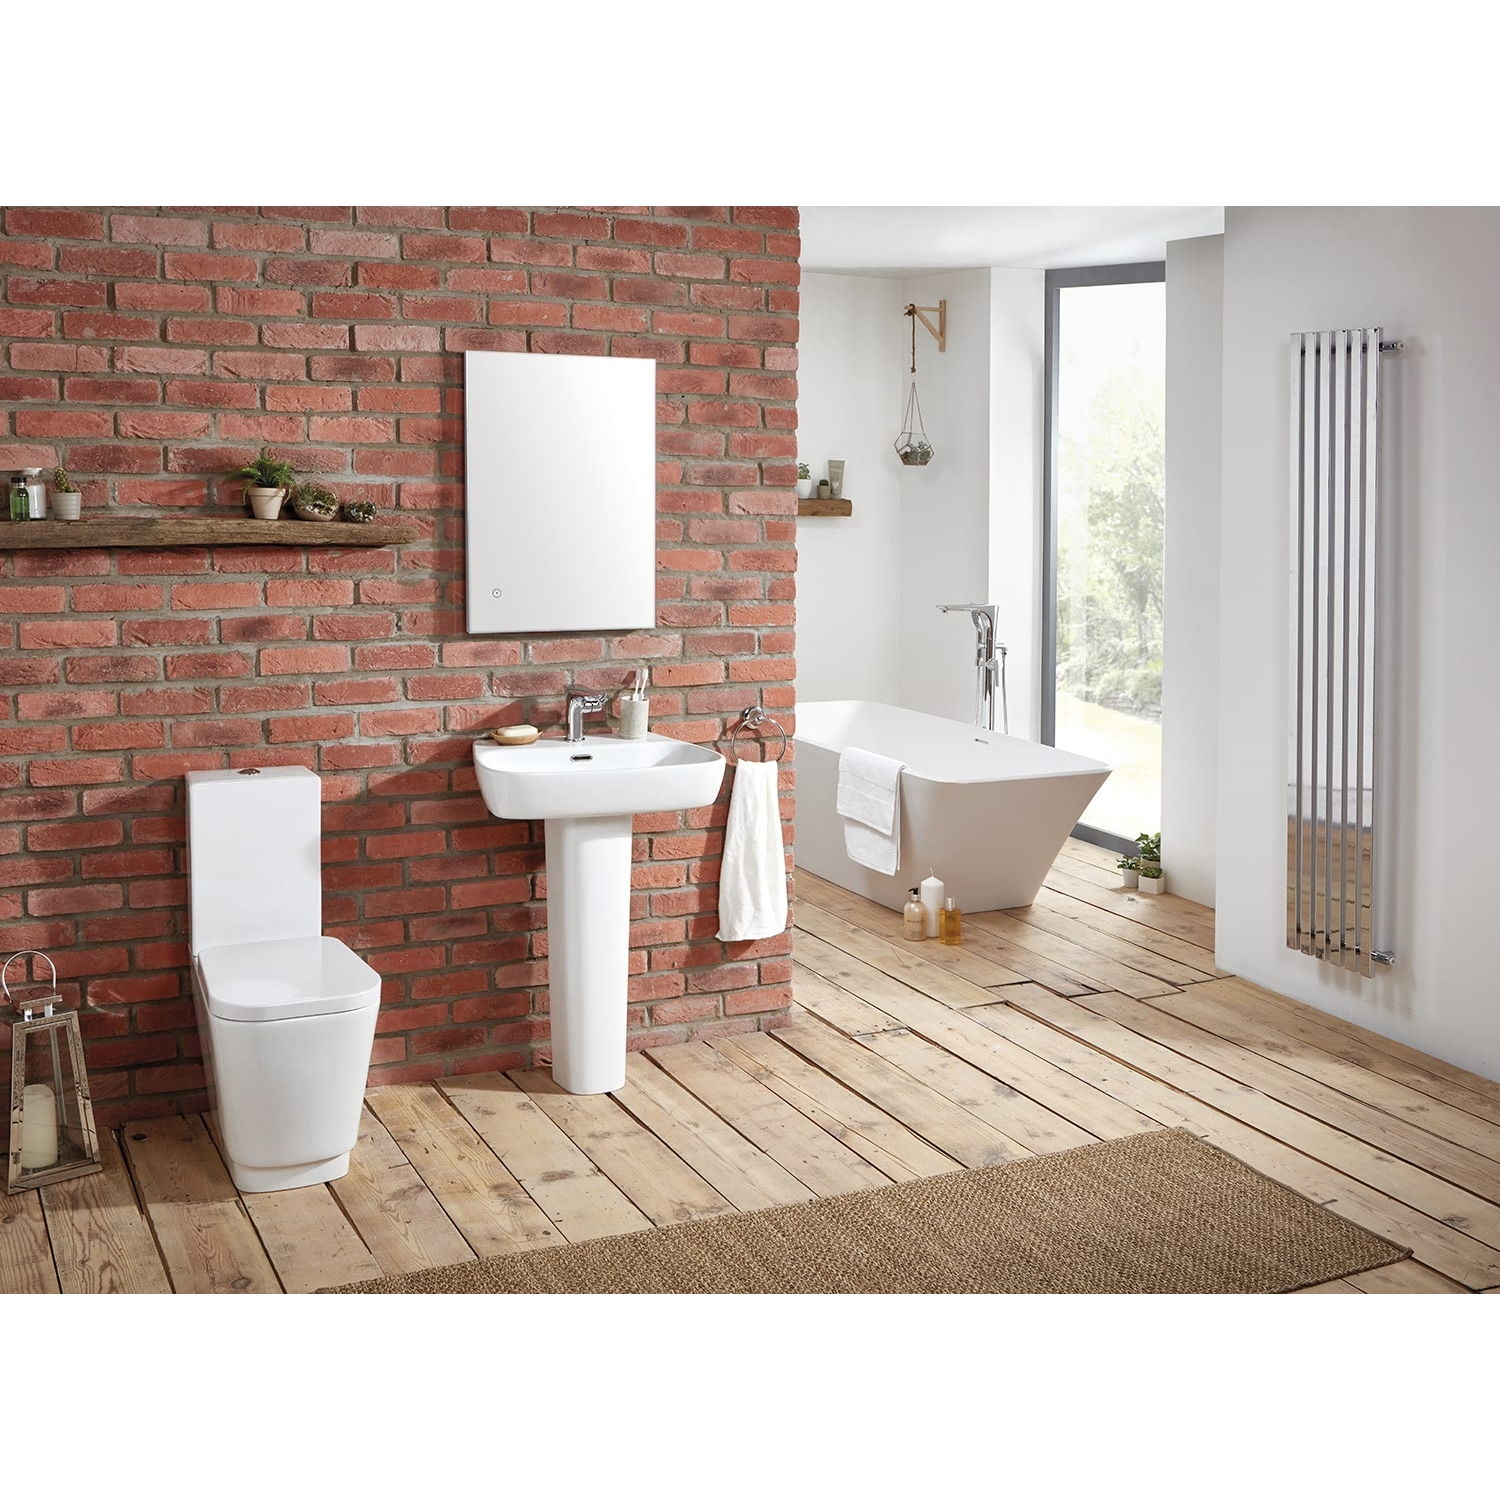 Verona Bellisi Aquaceramica Close Coupled Toilet WC Push Button Cistern - Excluding Seat